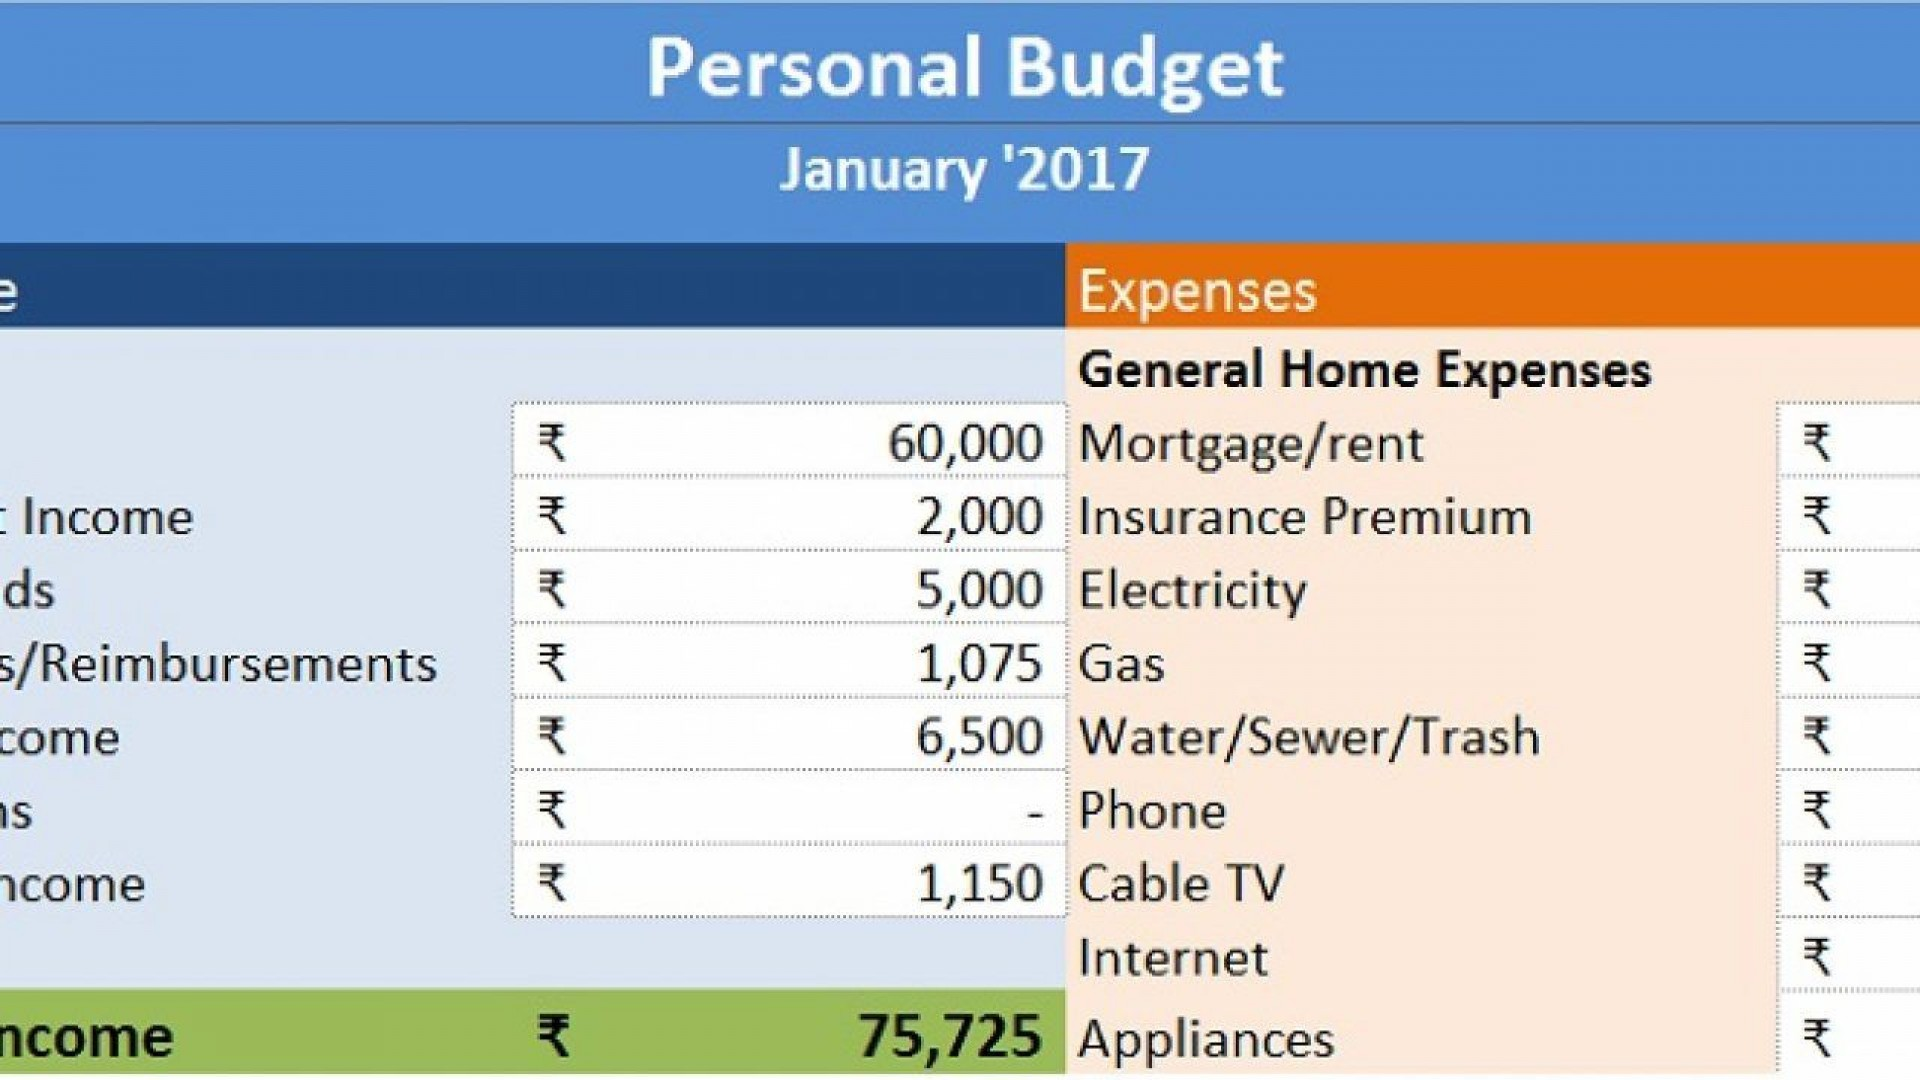 003 Formidable Personal Finance Template Excel Picture  Spending Expense Free Financial Planning India1920